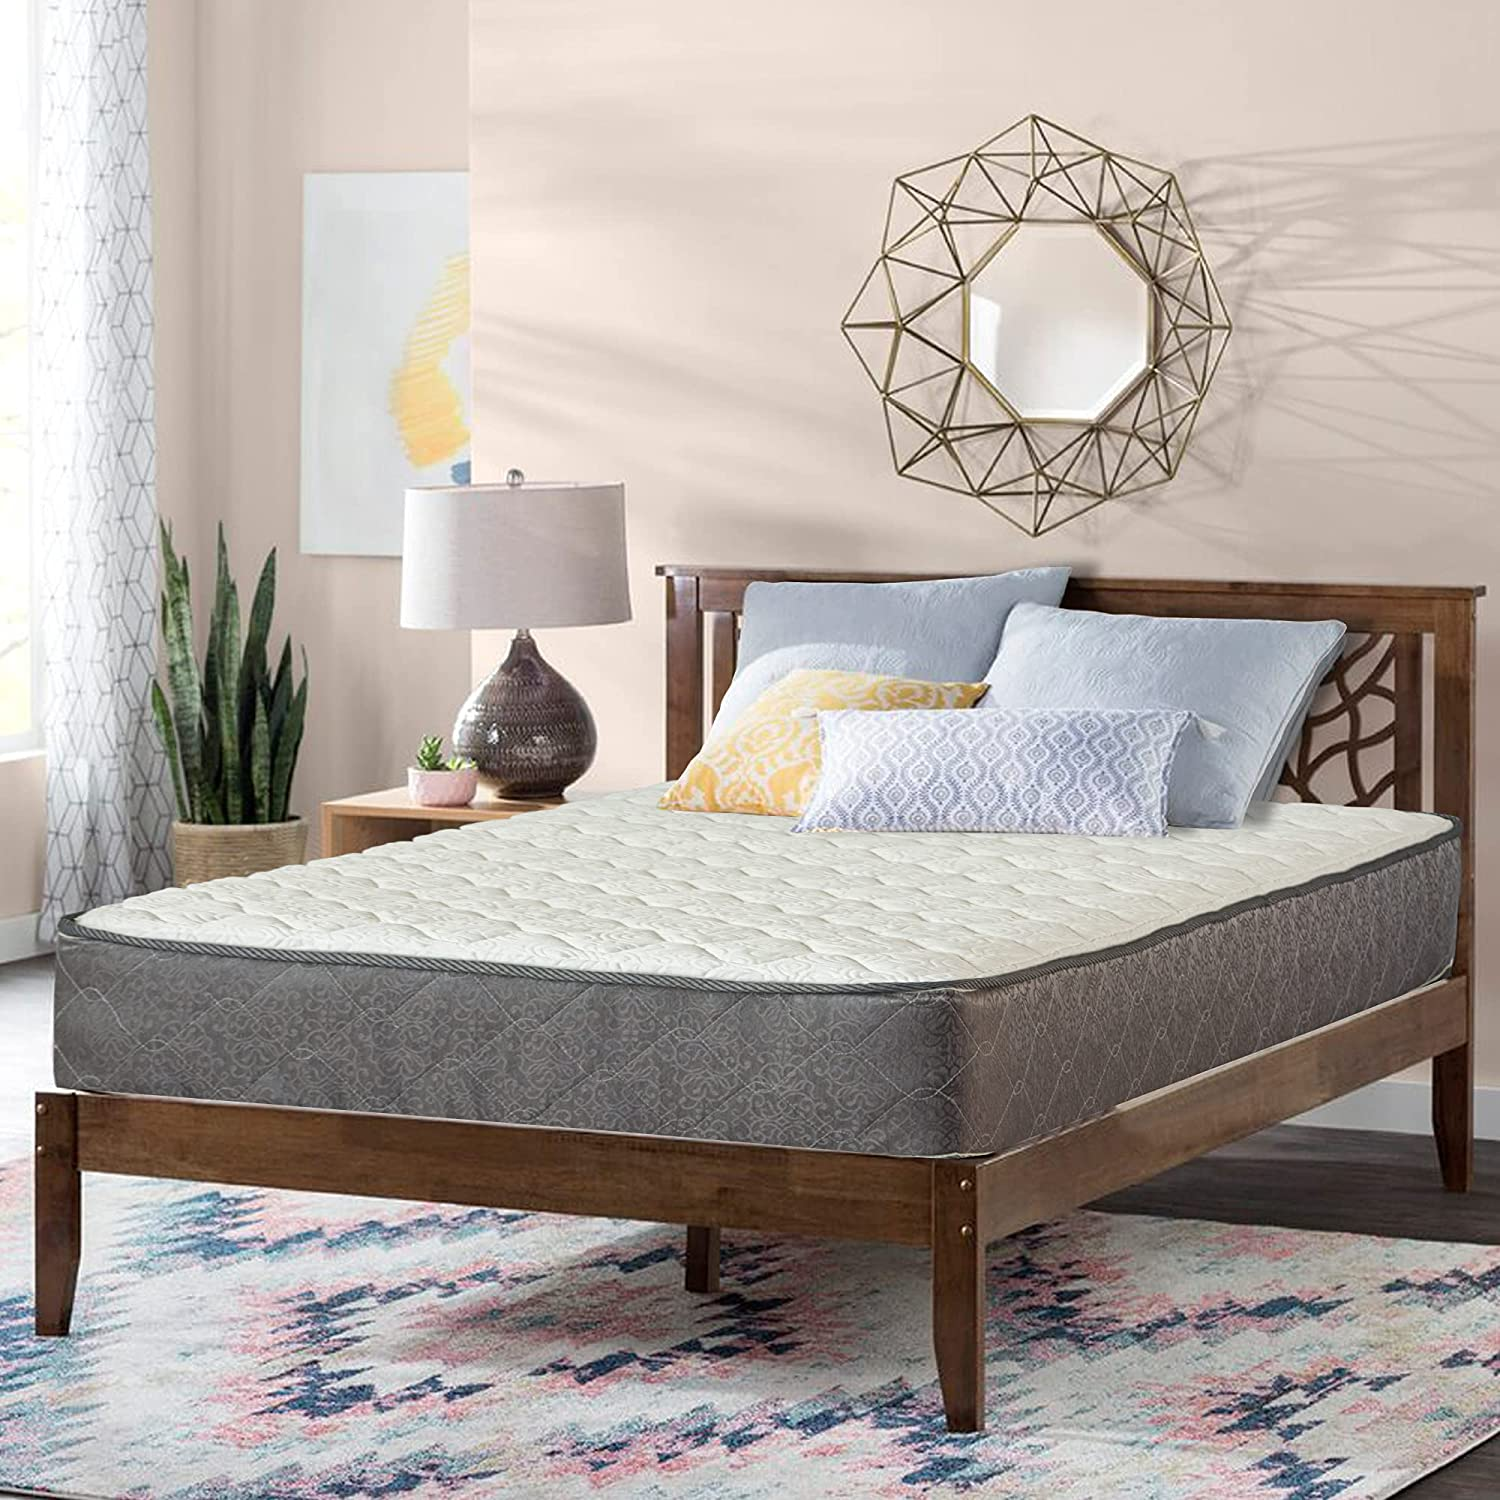 List price Greaton 9-Inch Popular Pocketed Coil Rolled Mattress A for Plush Medium